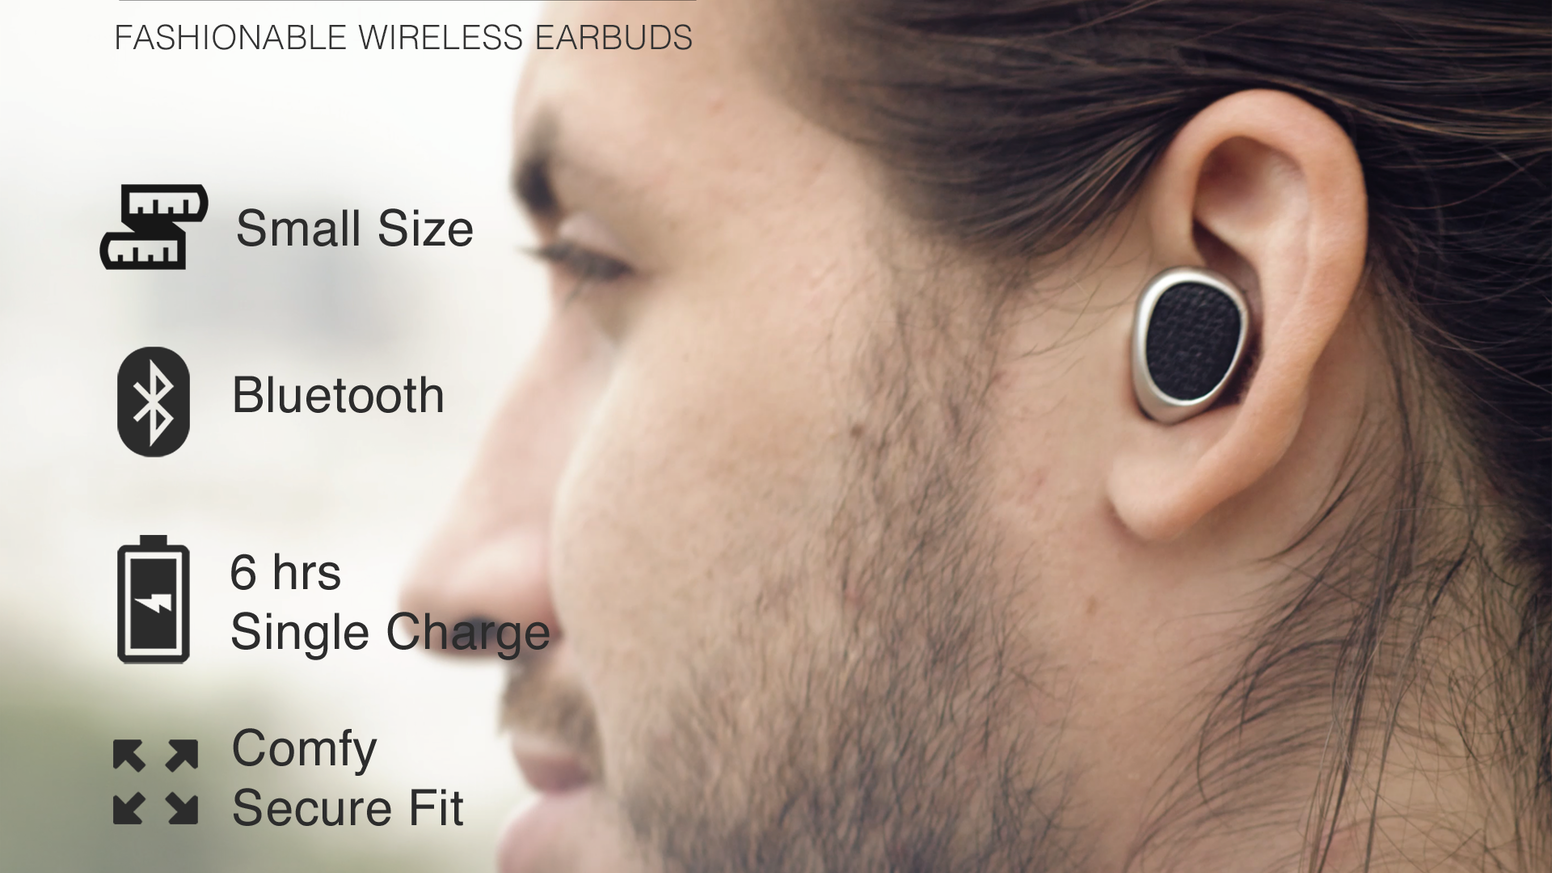 Truebuds The Worlds Smallest Stereo Cordless Earbuds By Headset Bluetooth Earbud Mini A Stylish Alternative To Bulky Headphones And Tangling Wires Best In Market 6